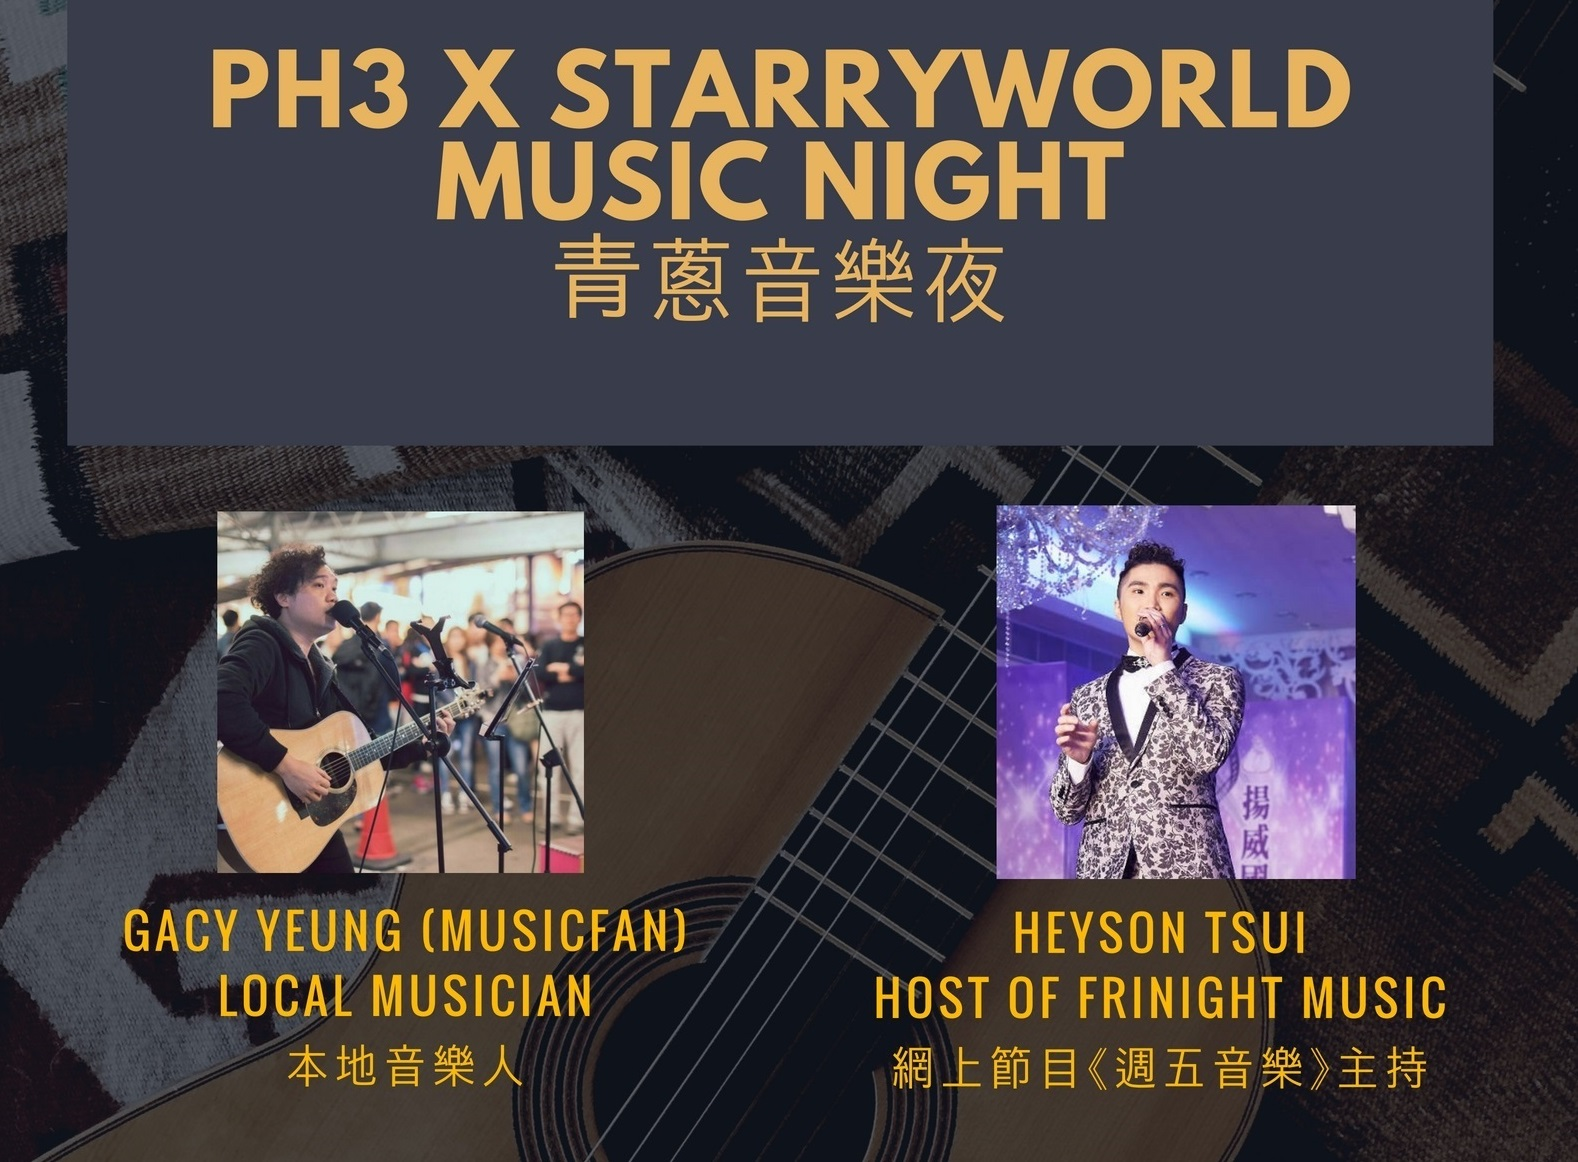 PH3 x Starryworld 青蔥音樂夜